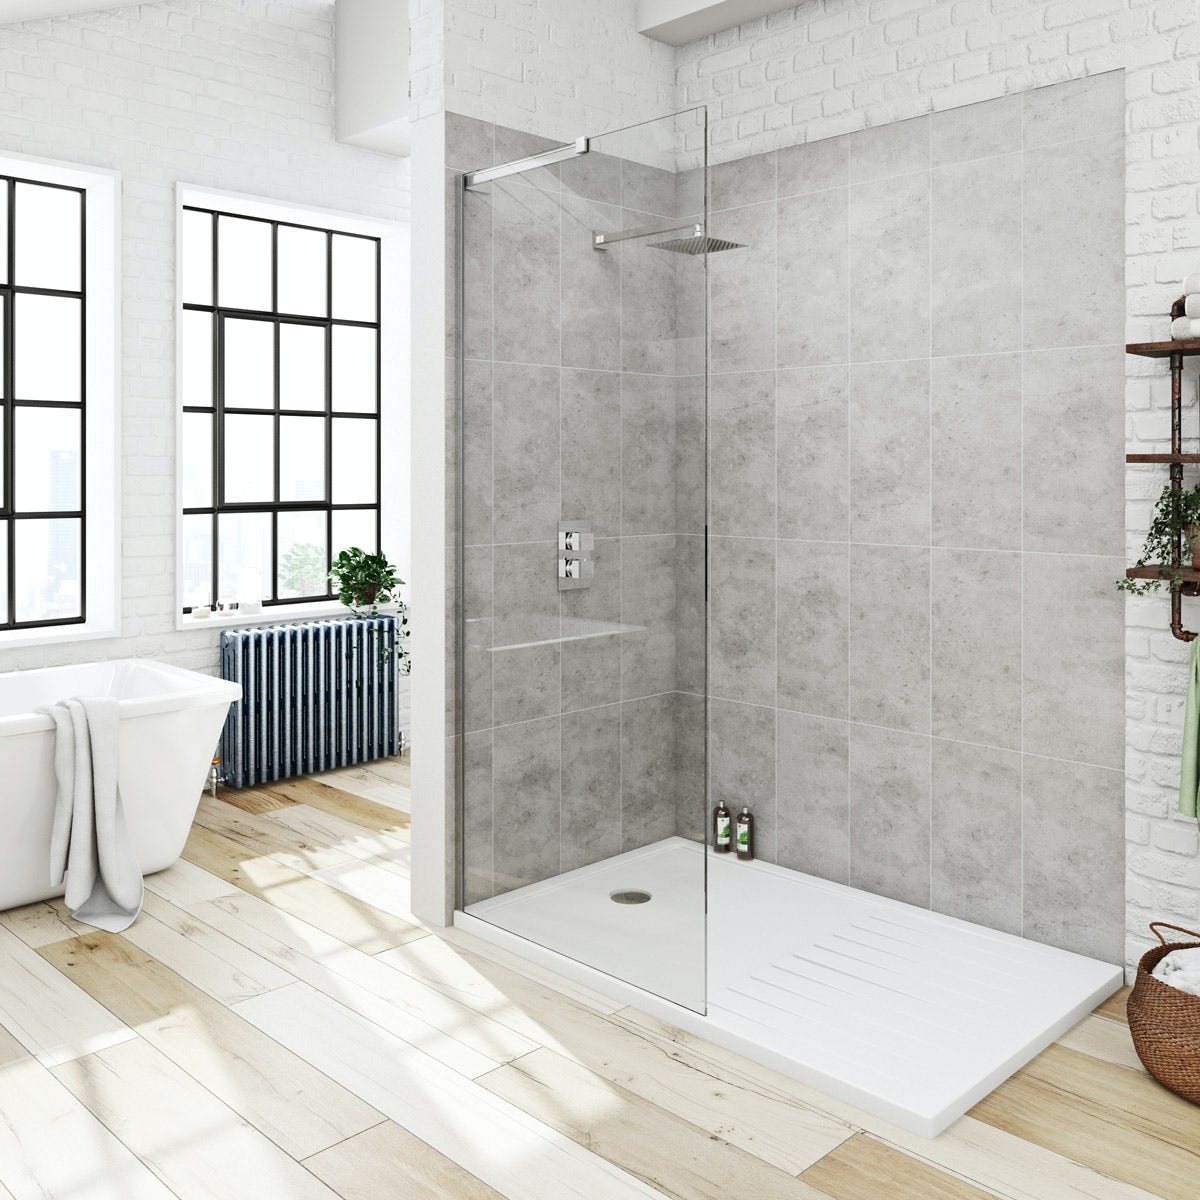 Victoria Plumb Showers >> Mode 8mm walk in pack with tray 1400 x 900 | VictoriaPlum.com